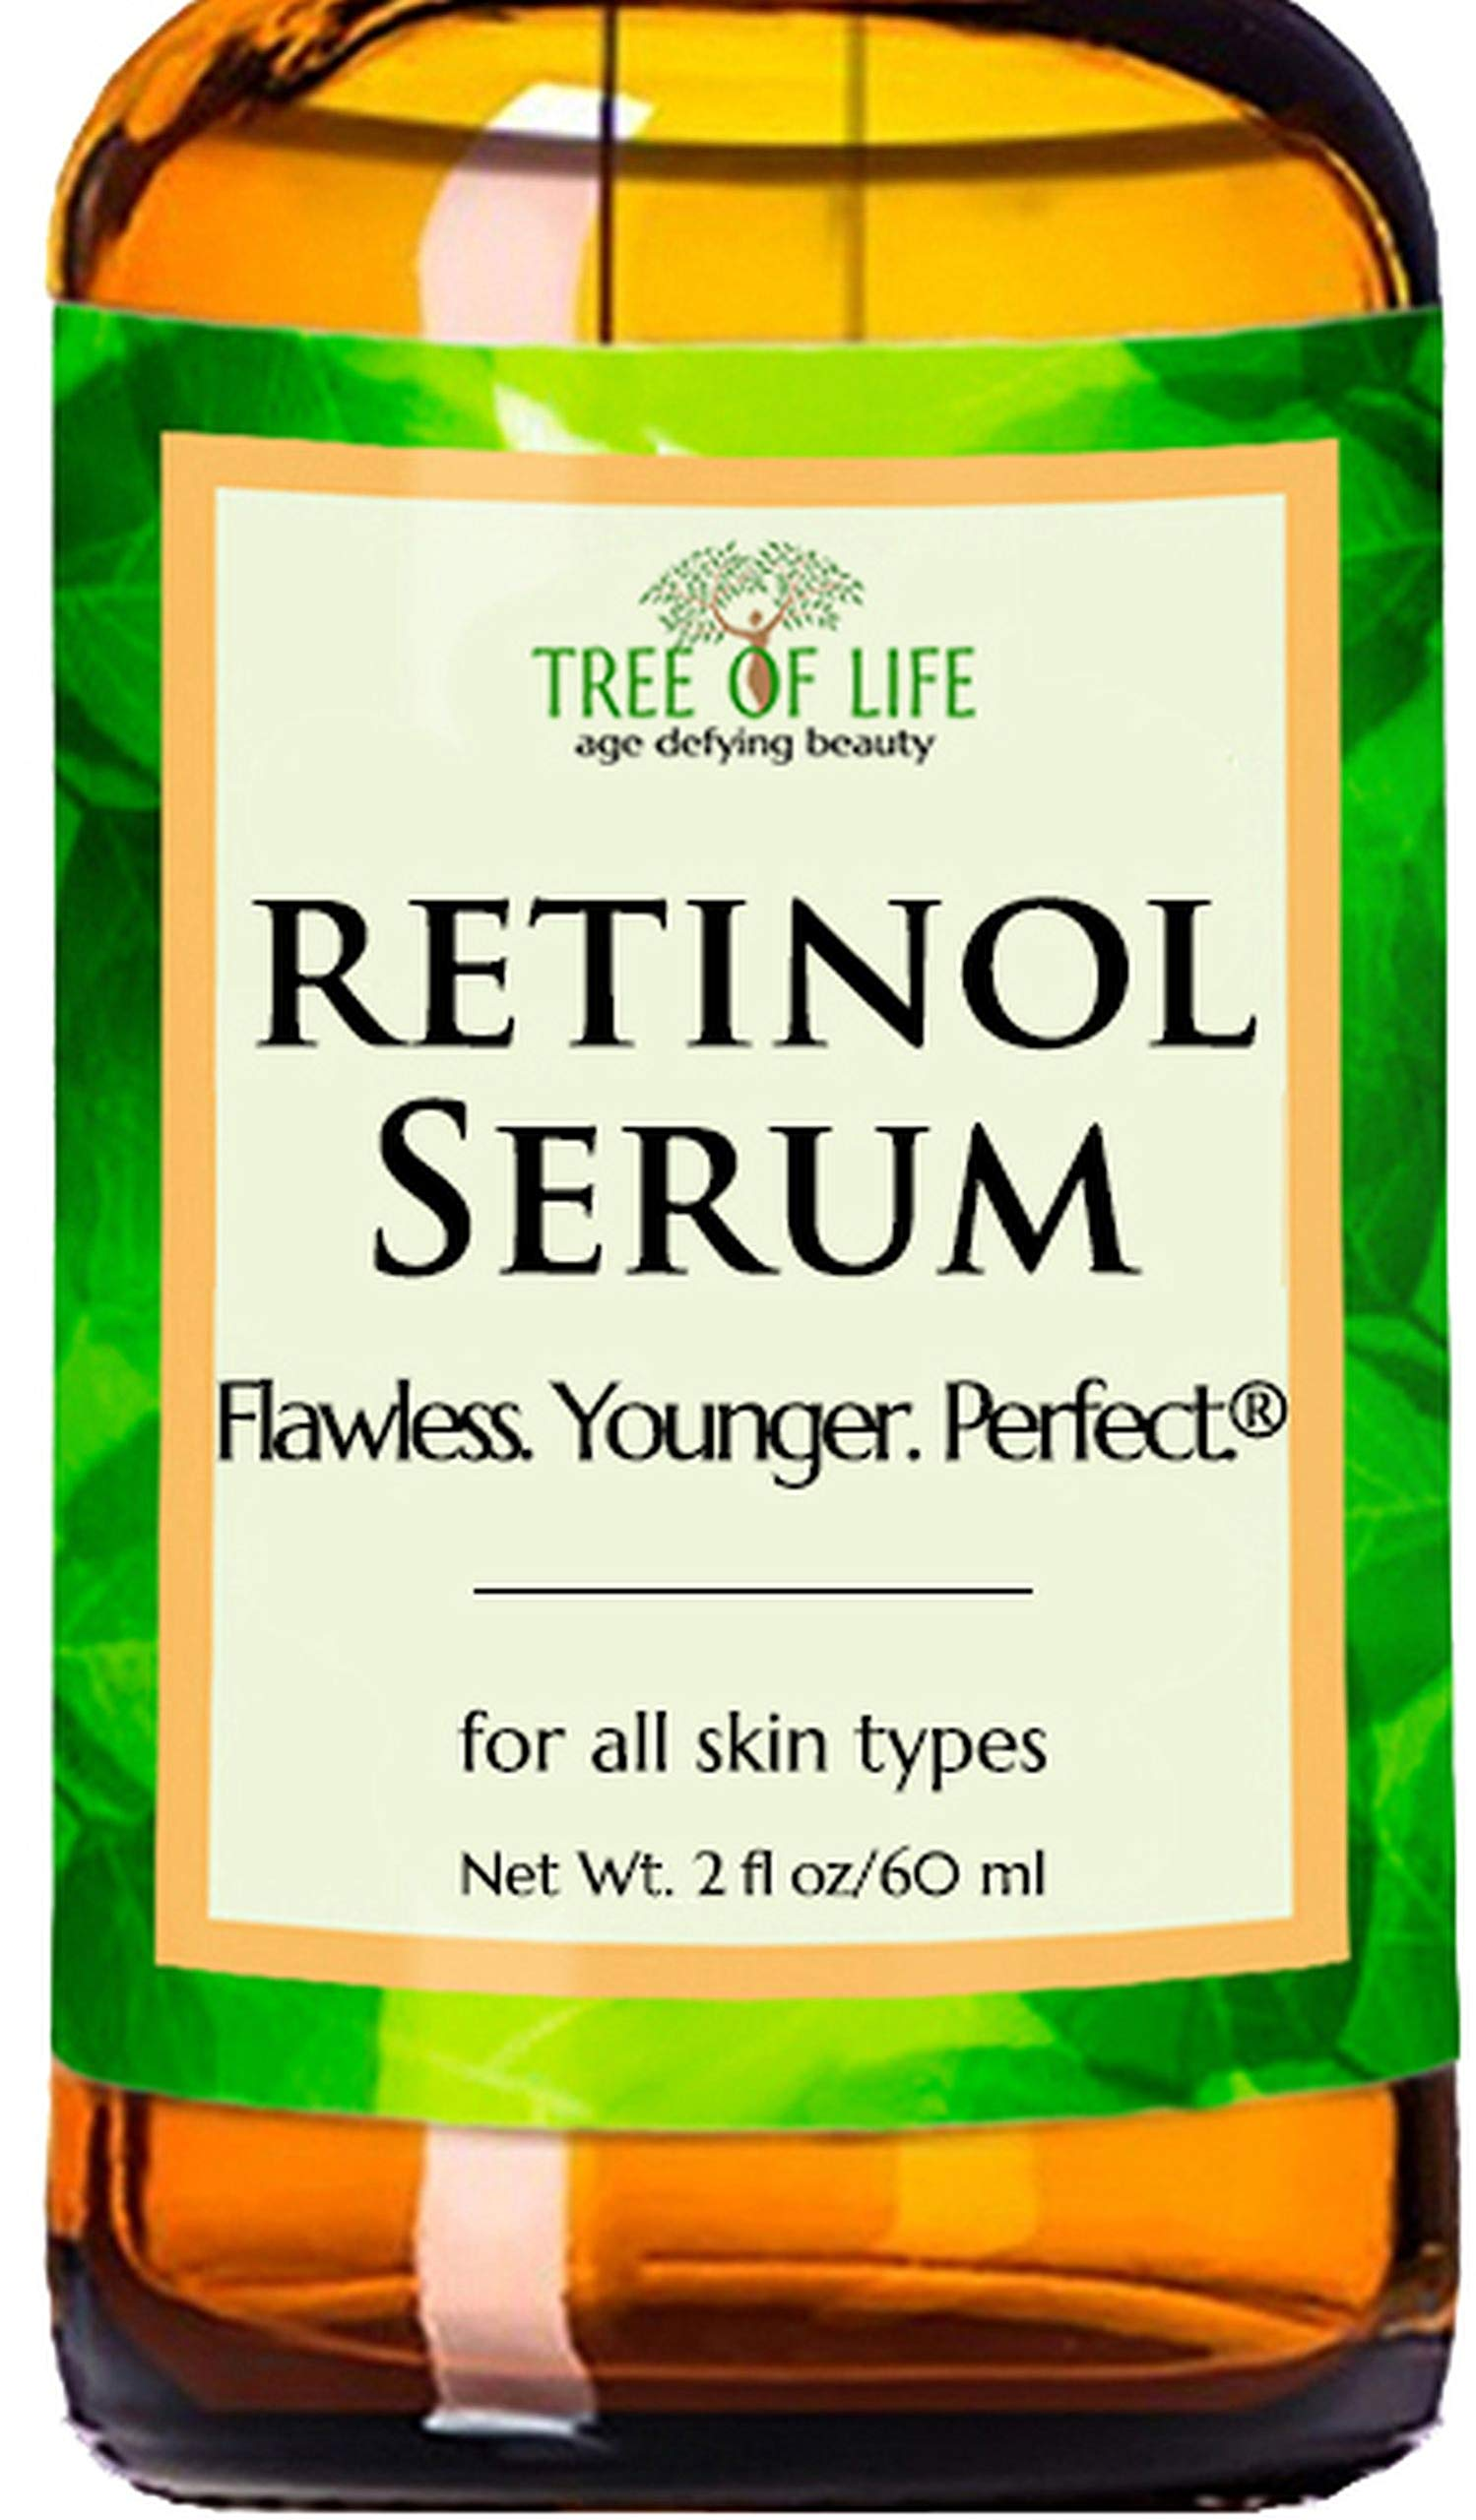 Retinol Serum for Face and Skin, DOUBLE SIZE (2oz) Anti Aging Serum, Clinical Strength by Flawless. Younger. Perfect.